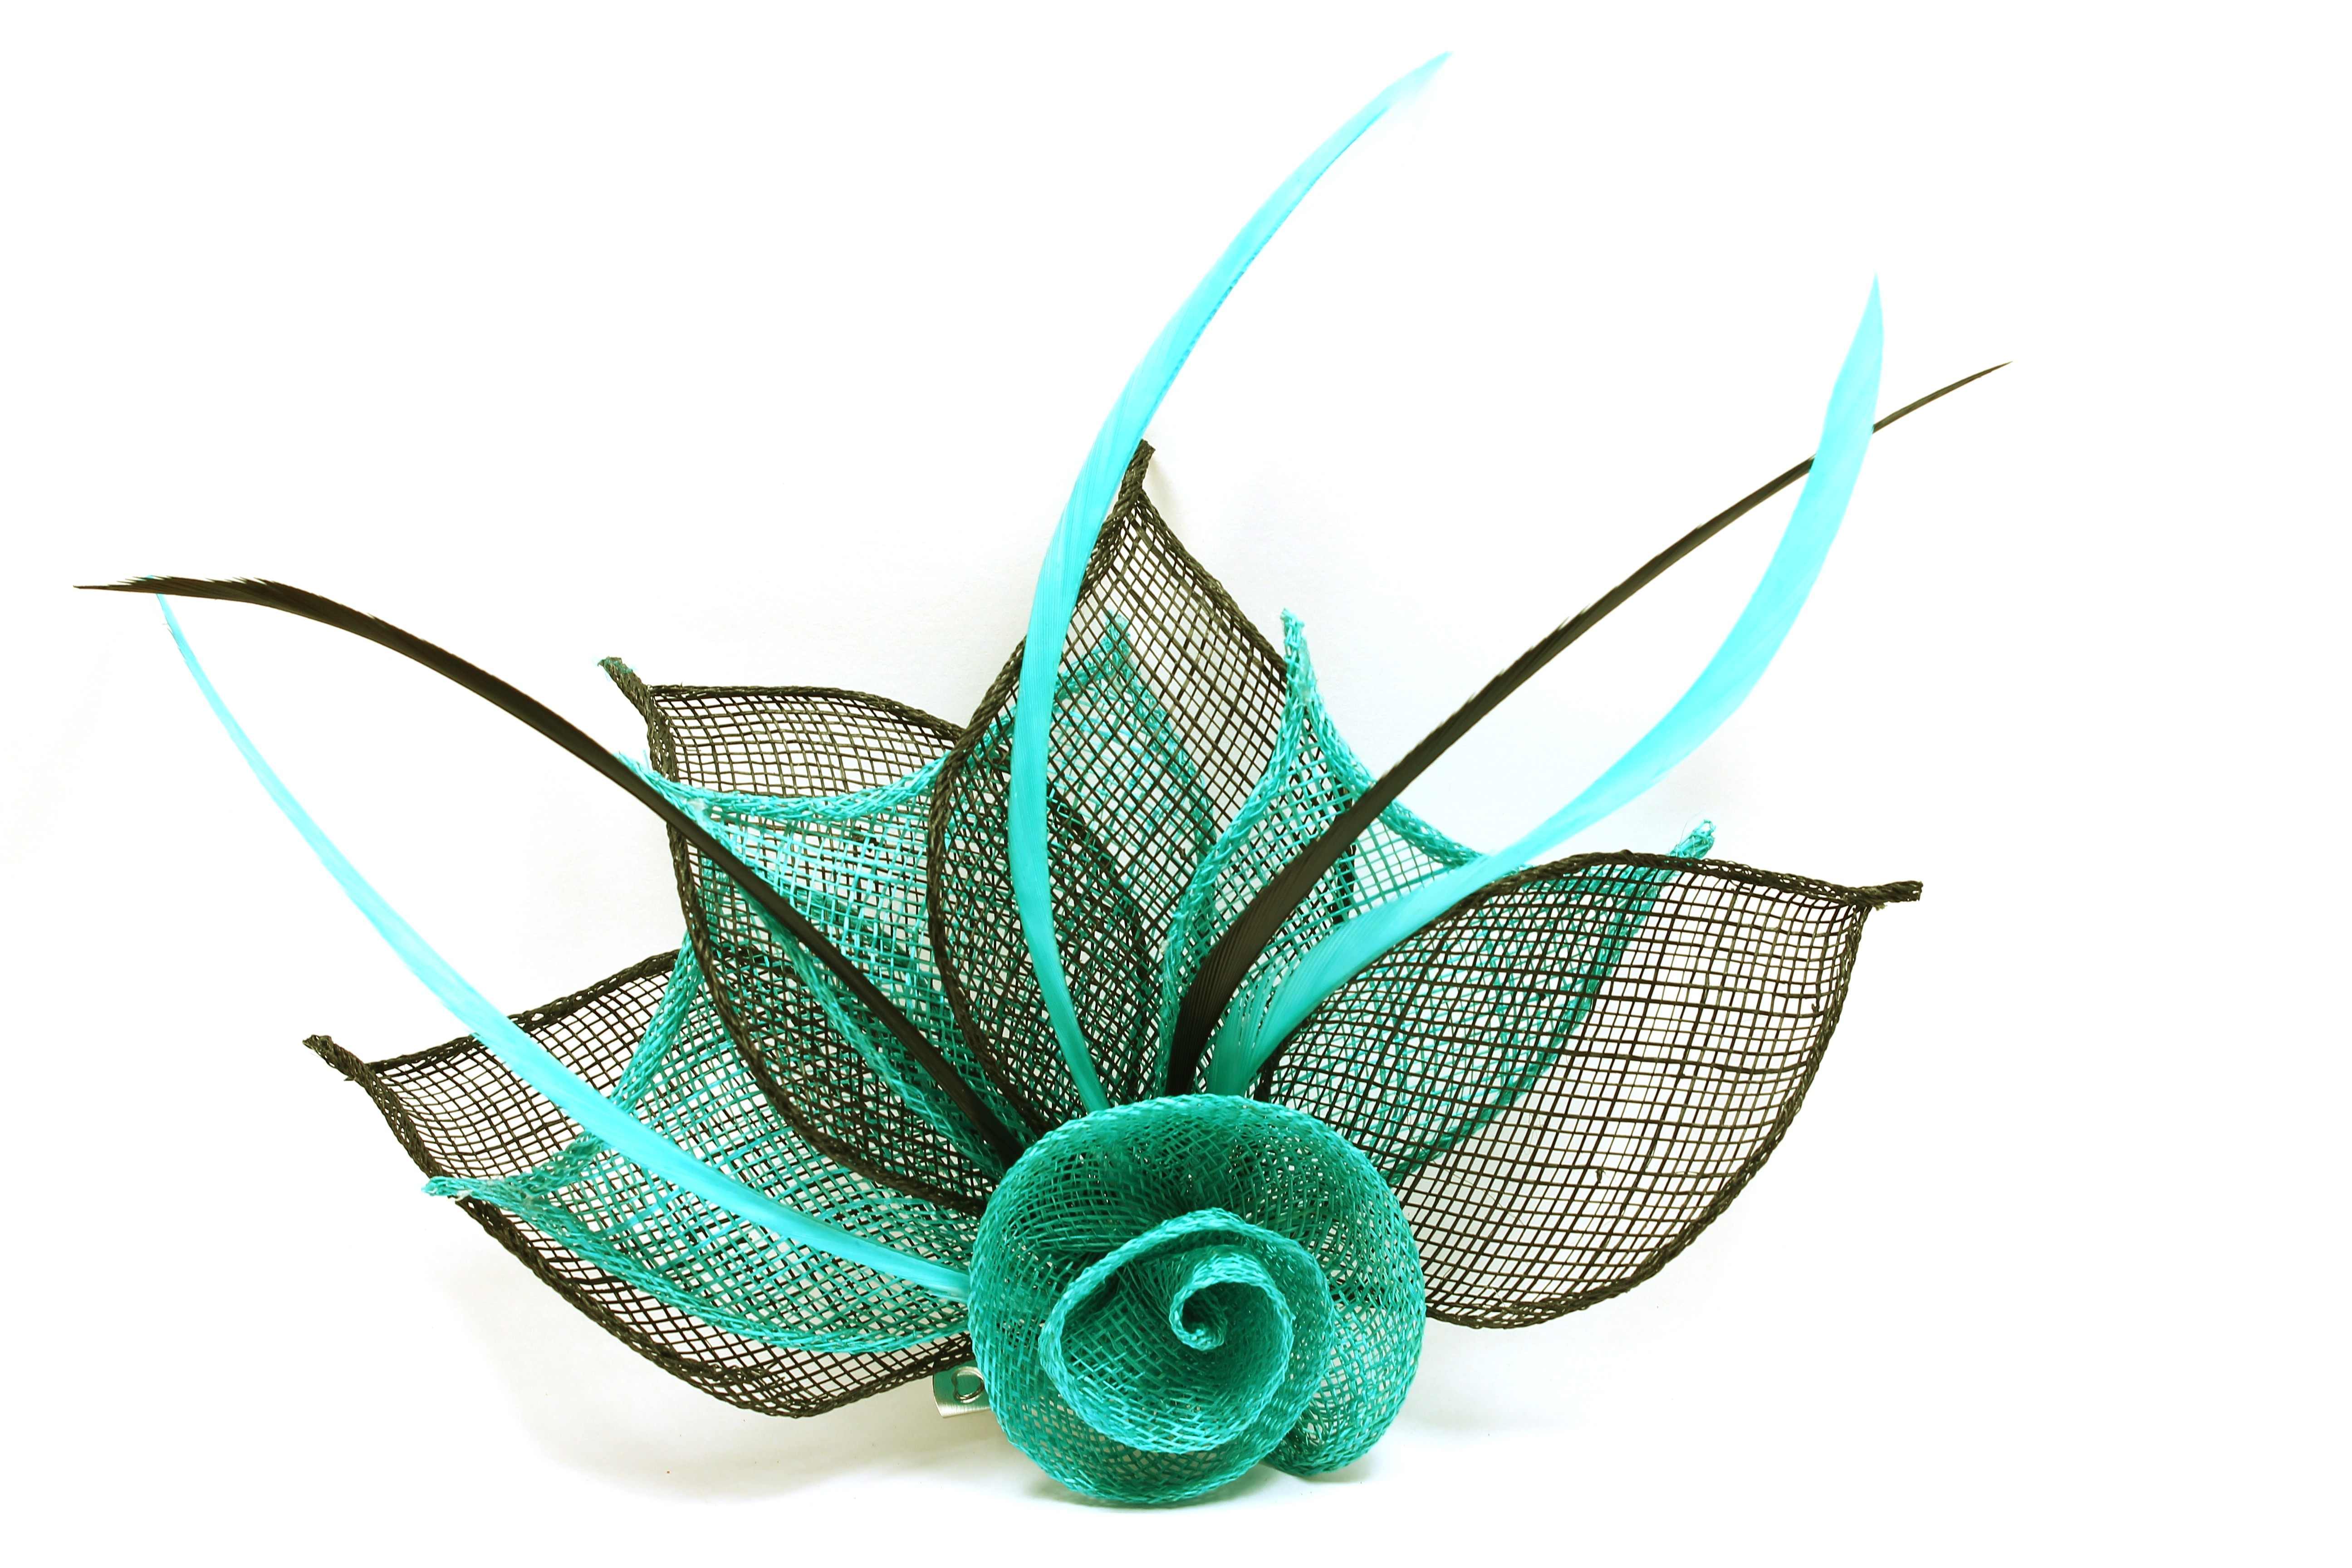 dccdfc7d42a07 Turquoise and black fascinator with hessian rose